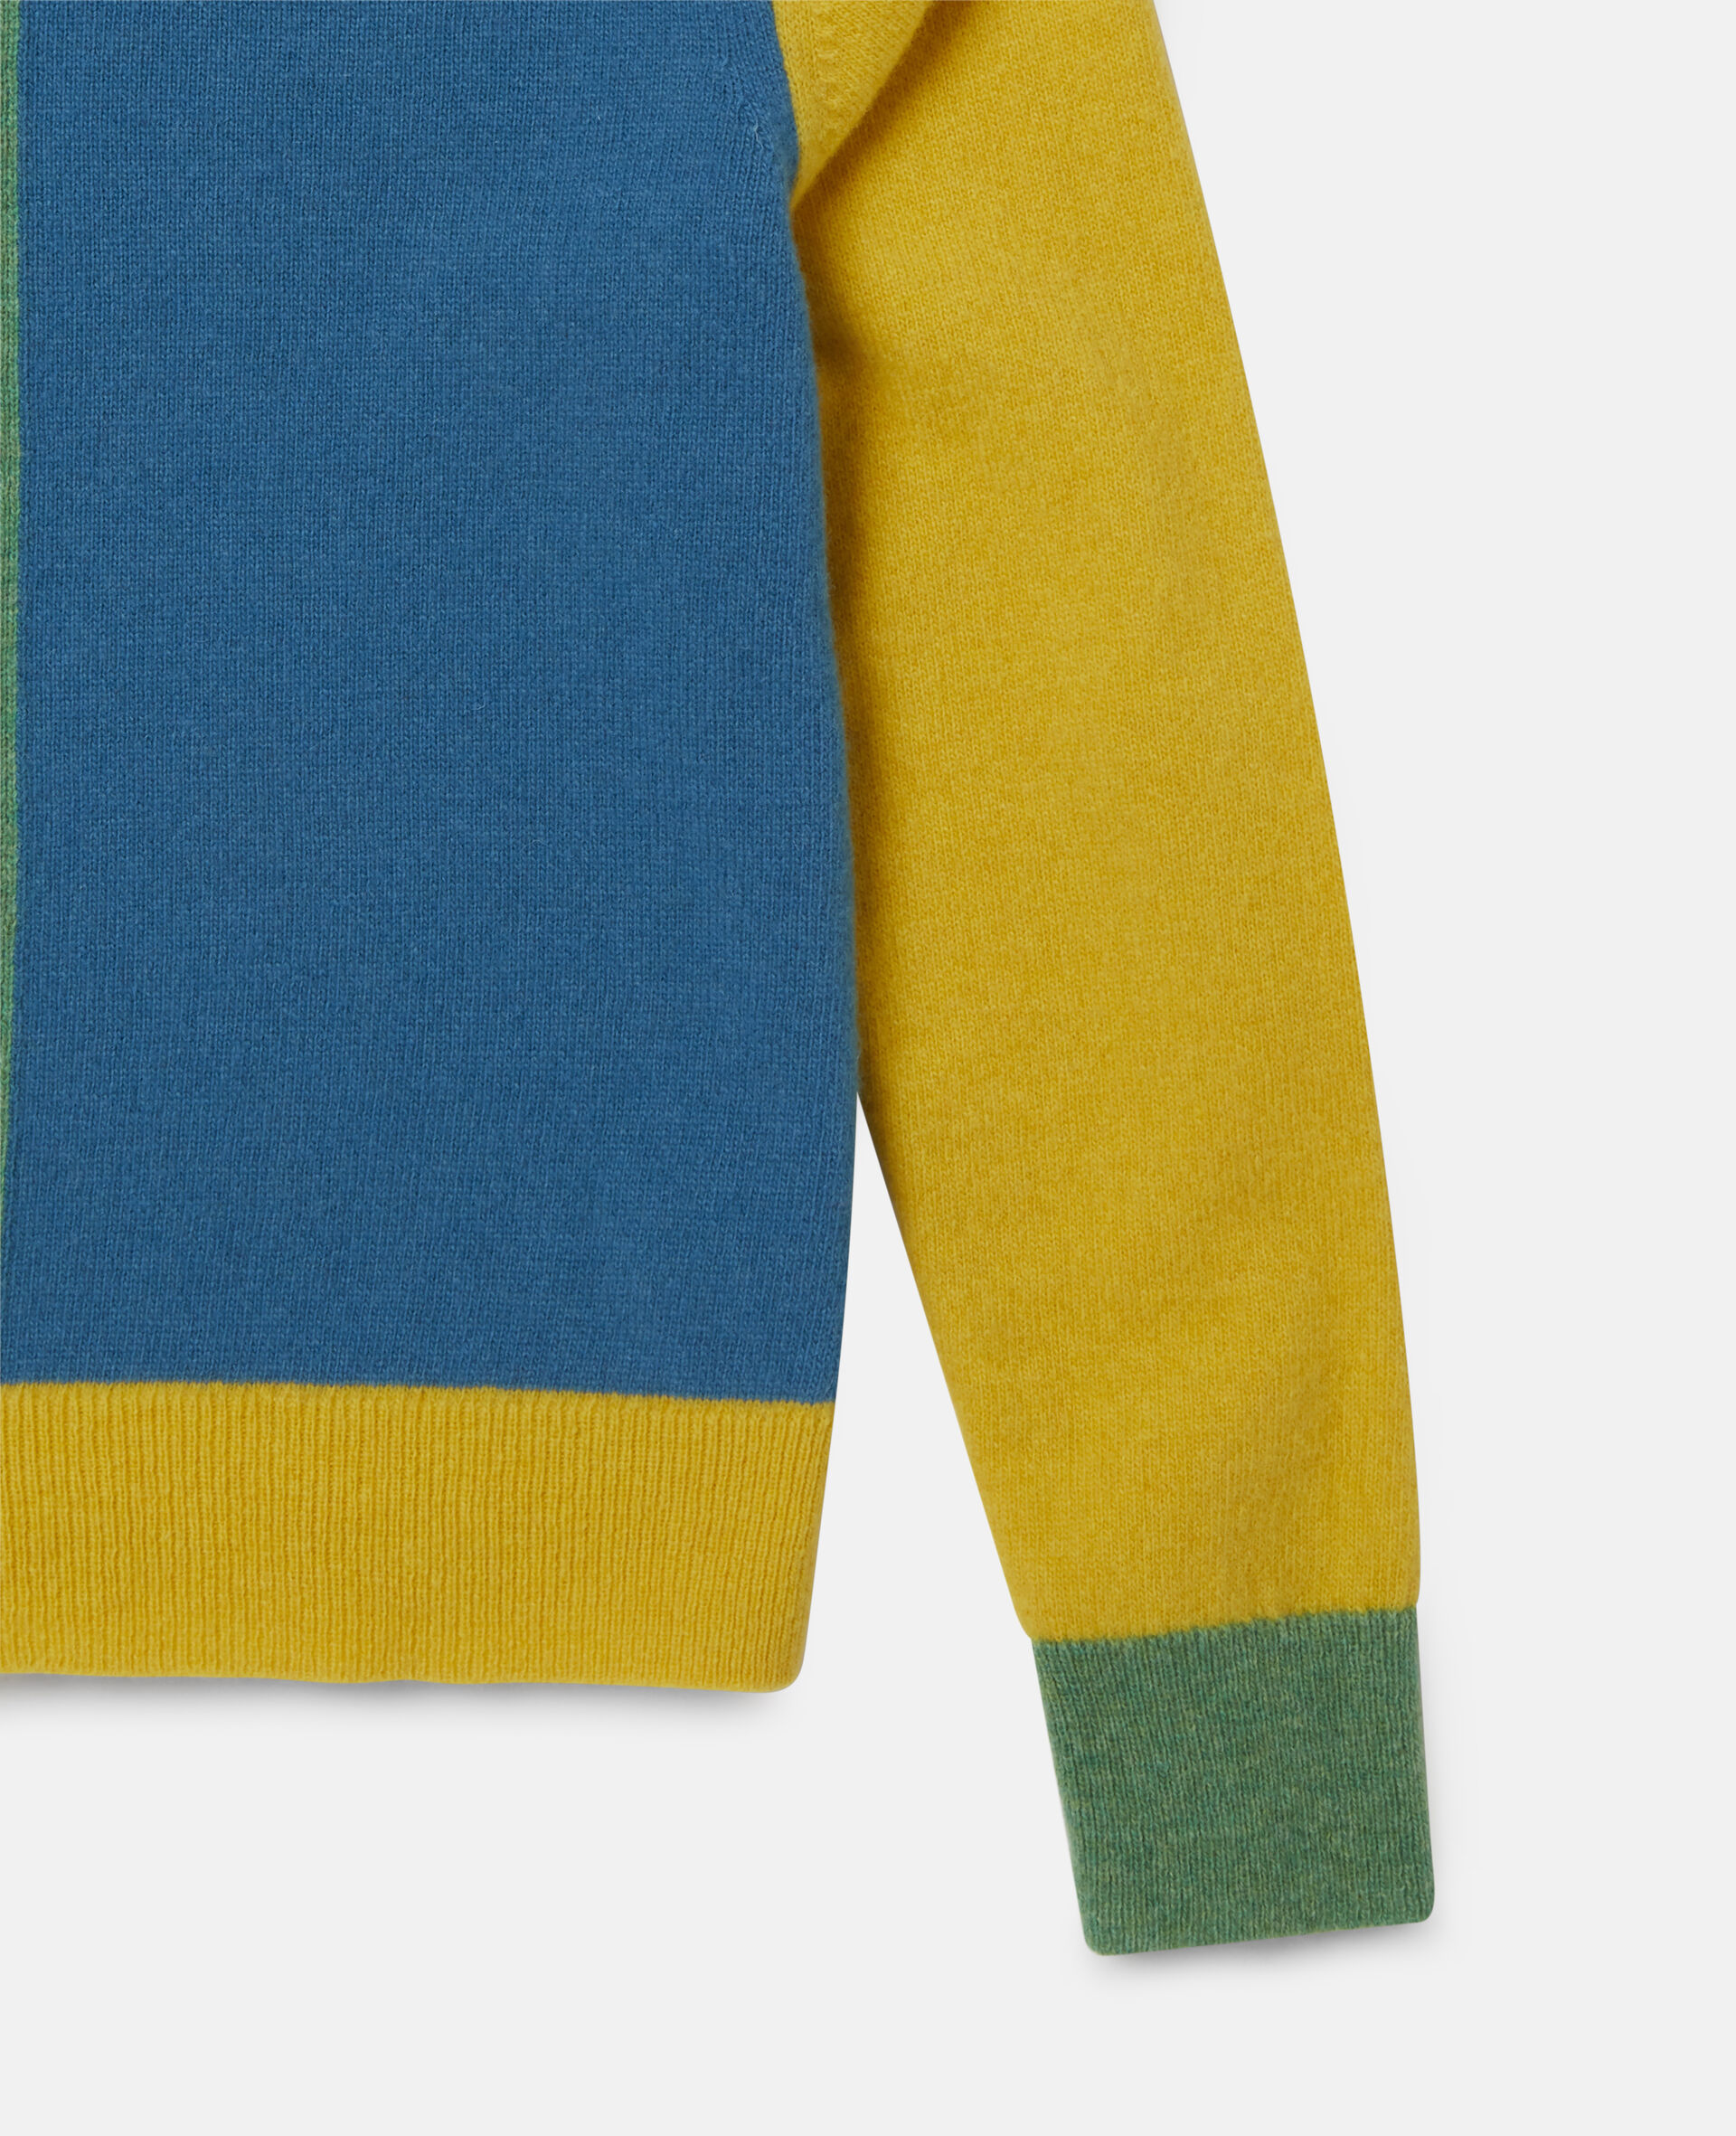 Colorblock Knit Intarsia Sweater -Multicolour-large image number 2